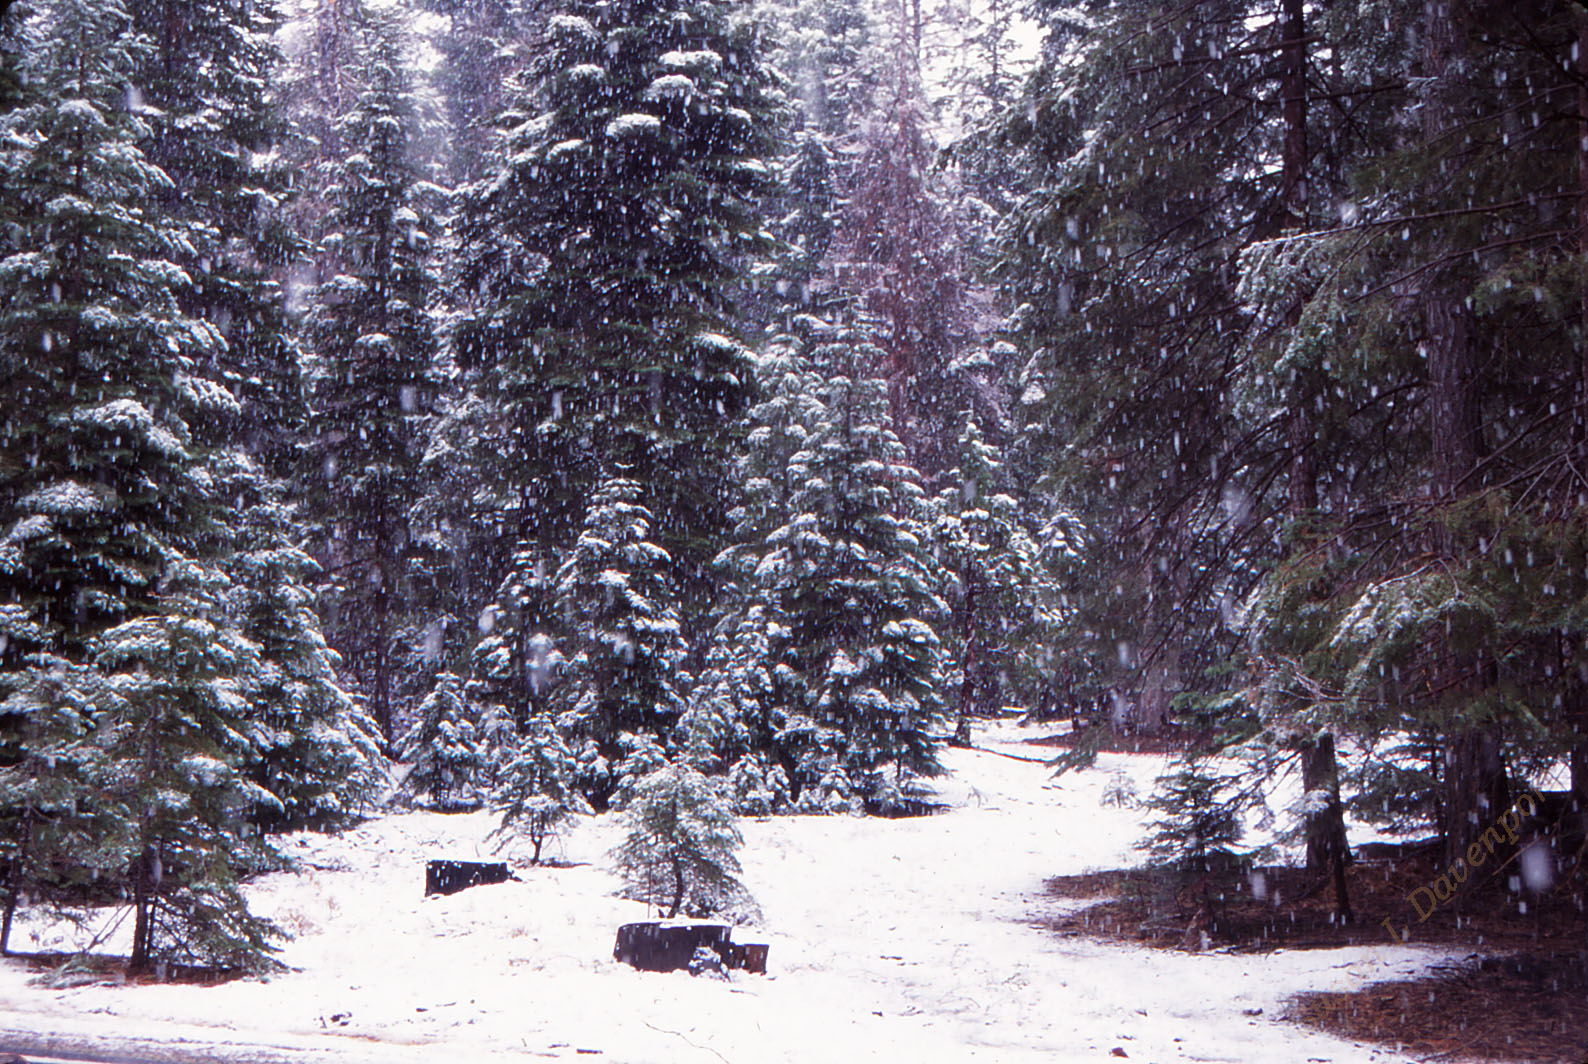 The First Snow of the Year - Photo by Susan L. Davenport